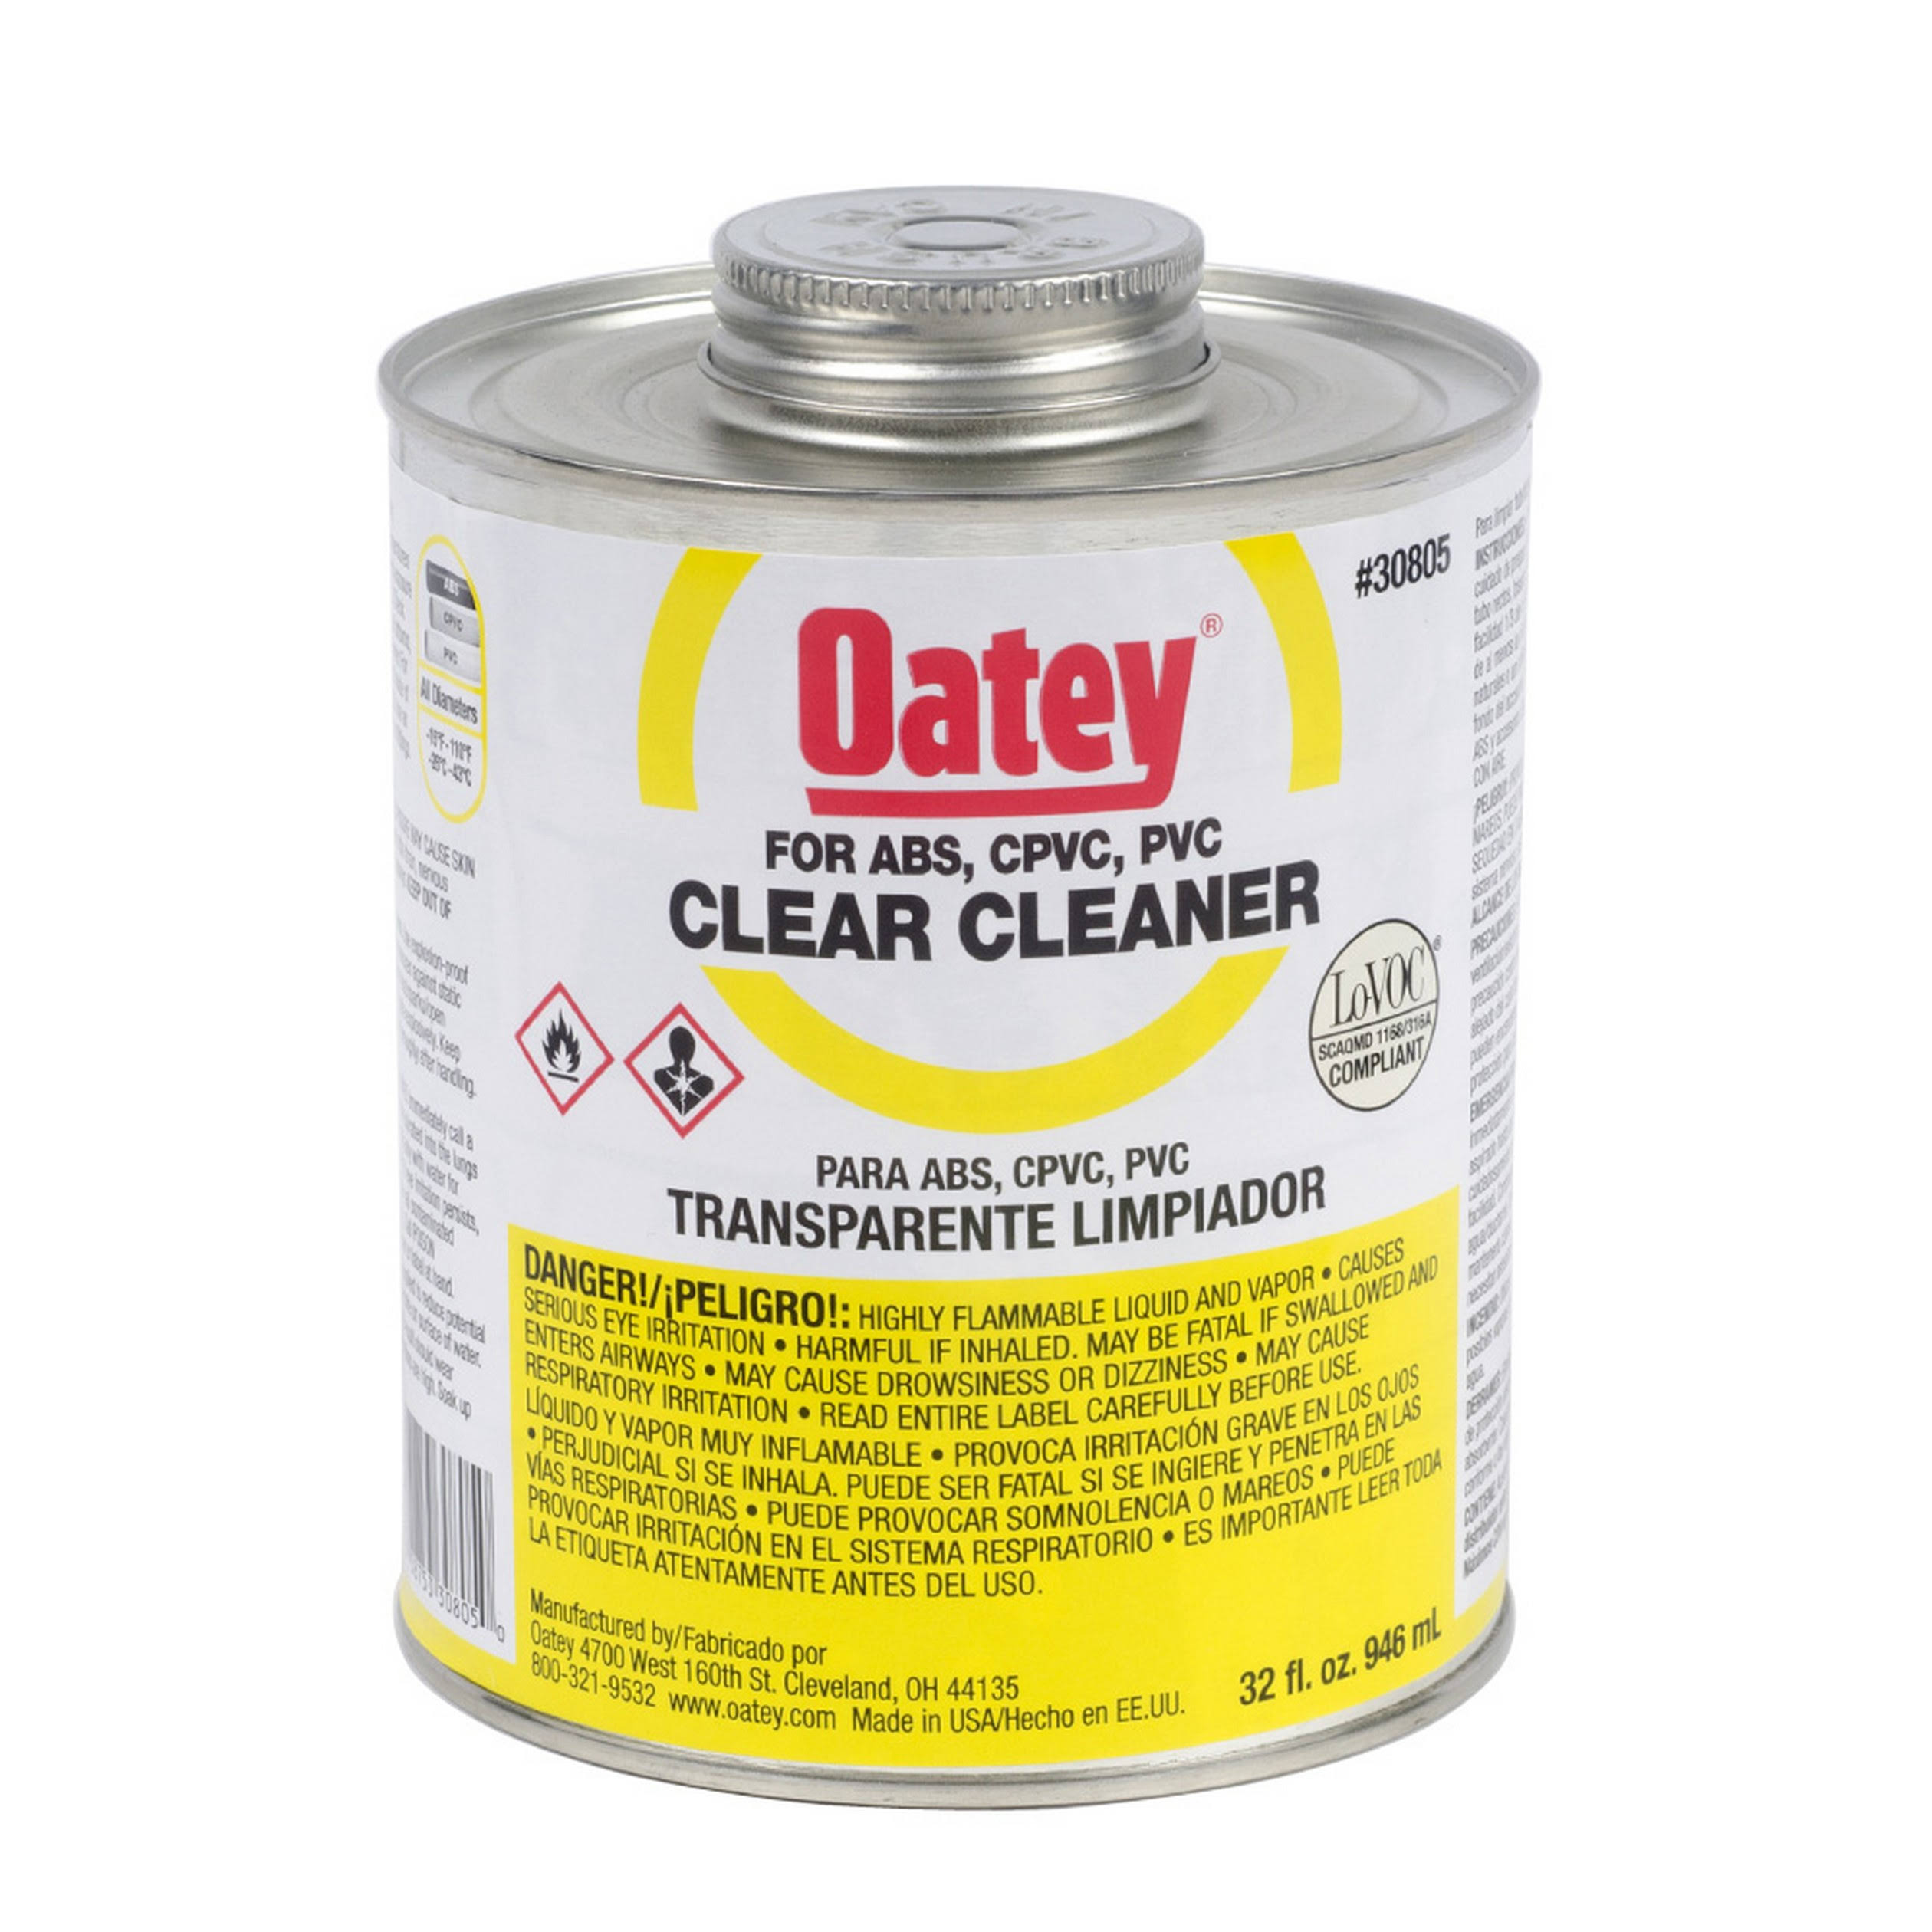 Oatey 307823 All-Purpose Pipe and Fitting Cleaner - 8oz